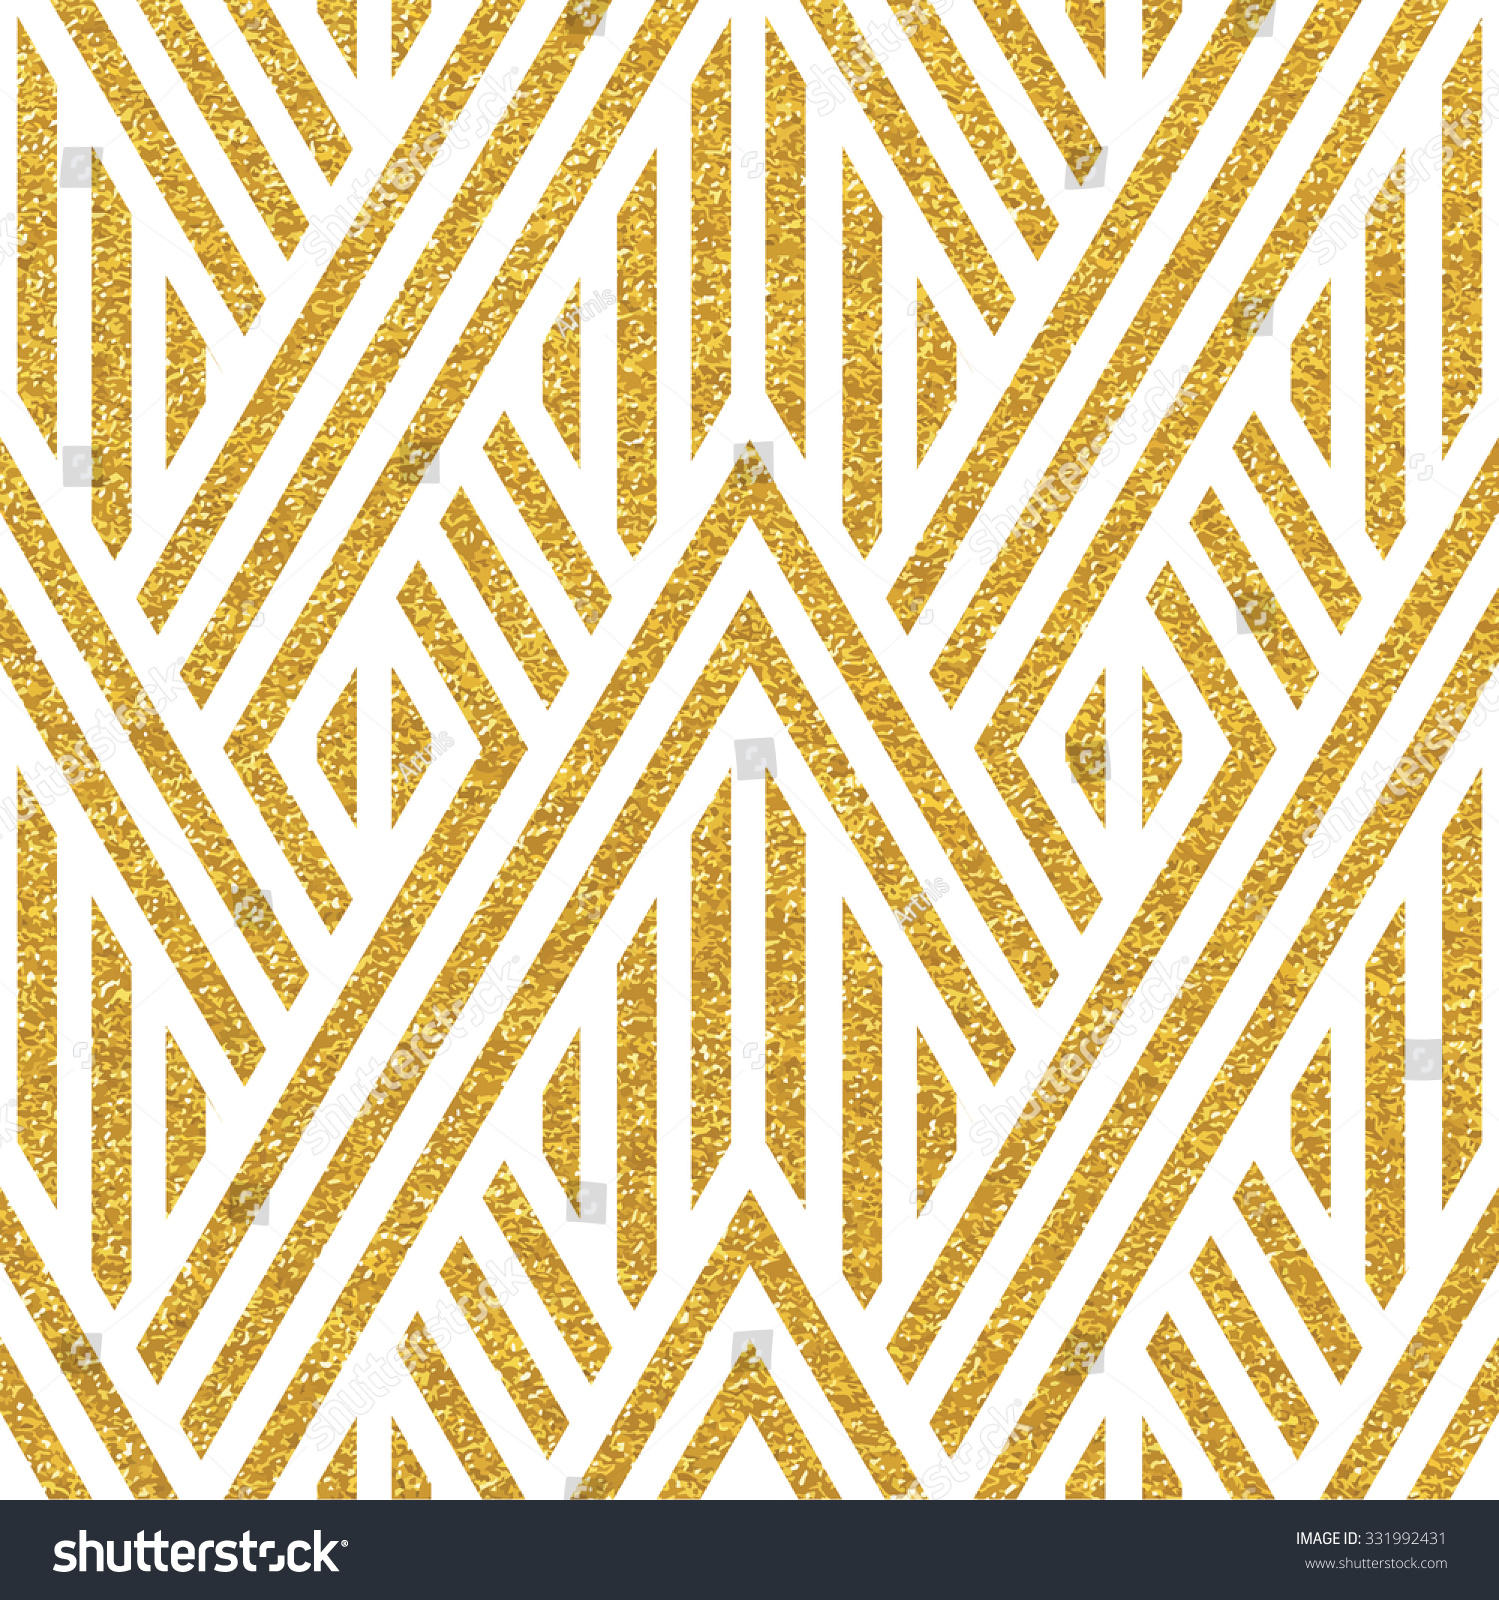 Cute Zig Zag Wallpapers Geometric Striped Ornament Vector Gold Seamless Stock